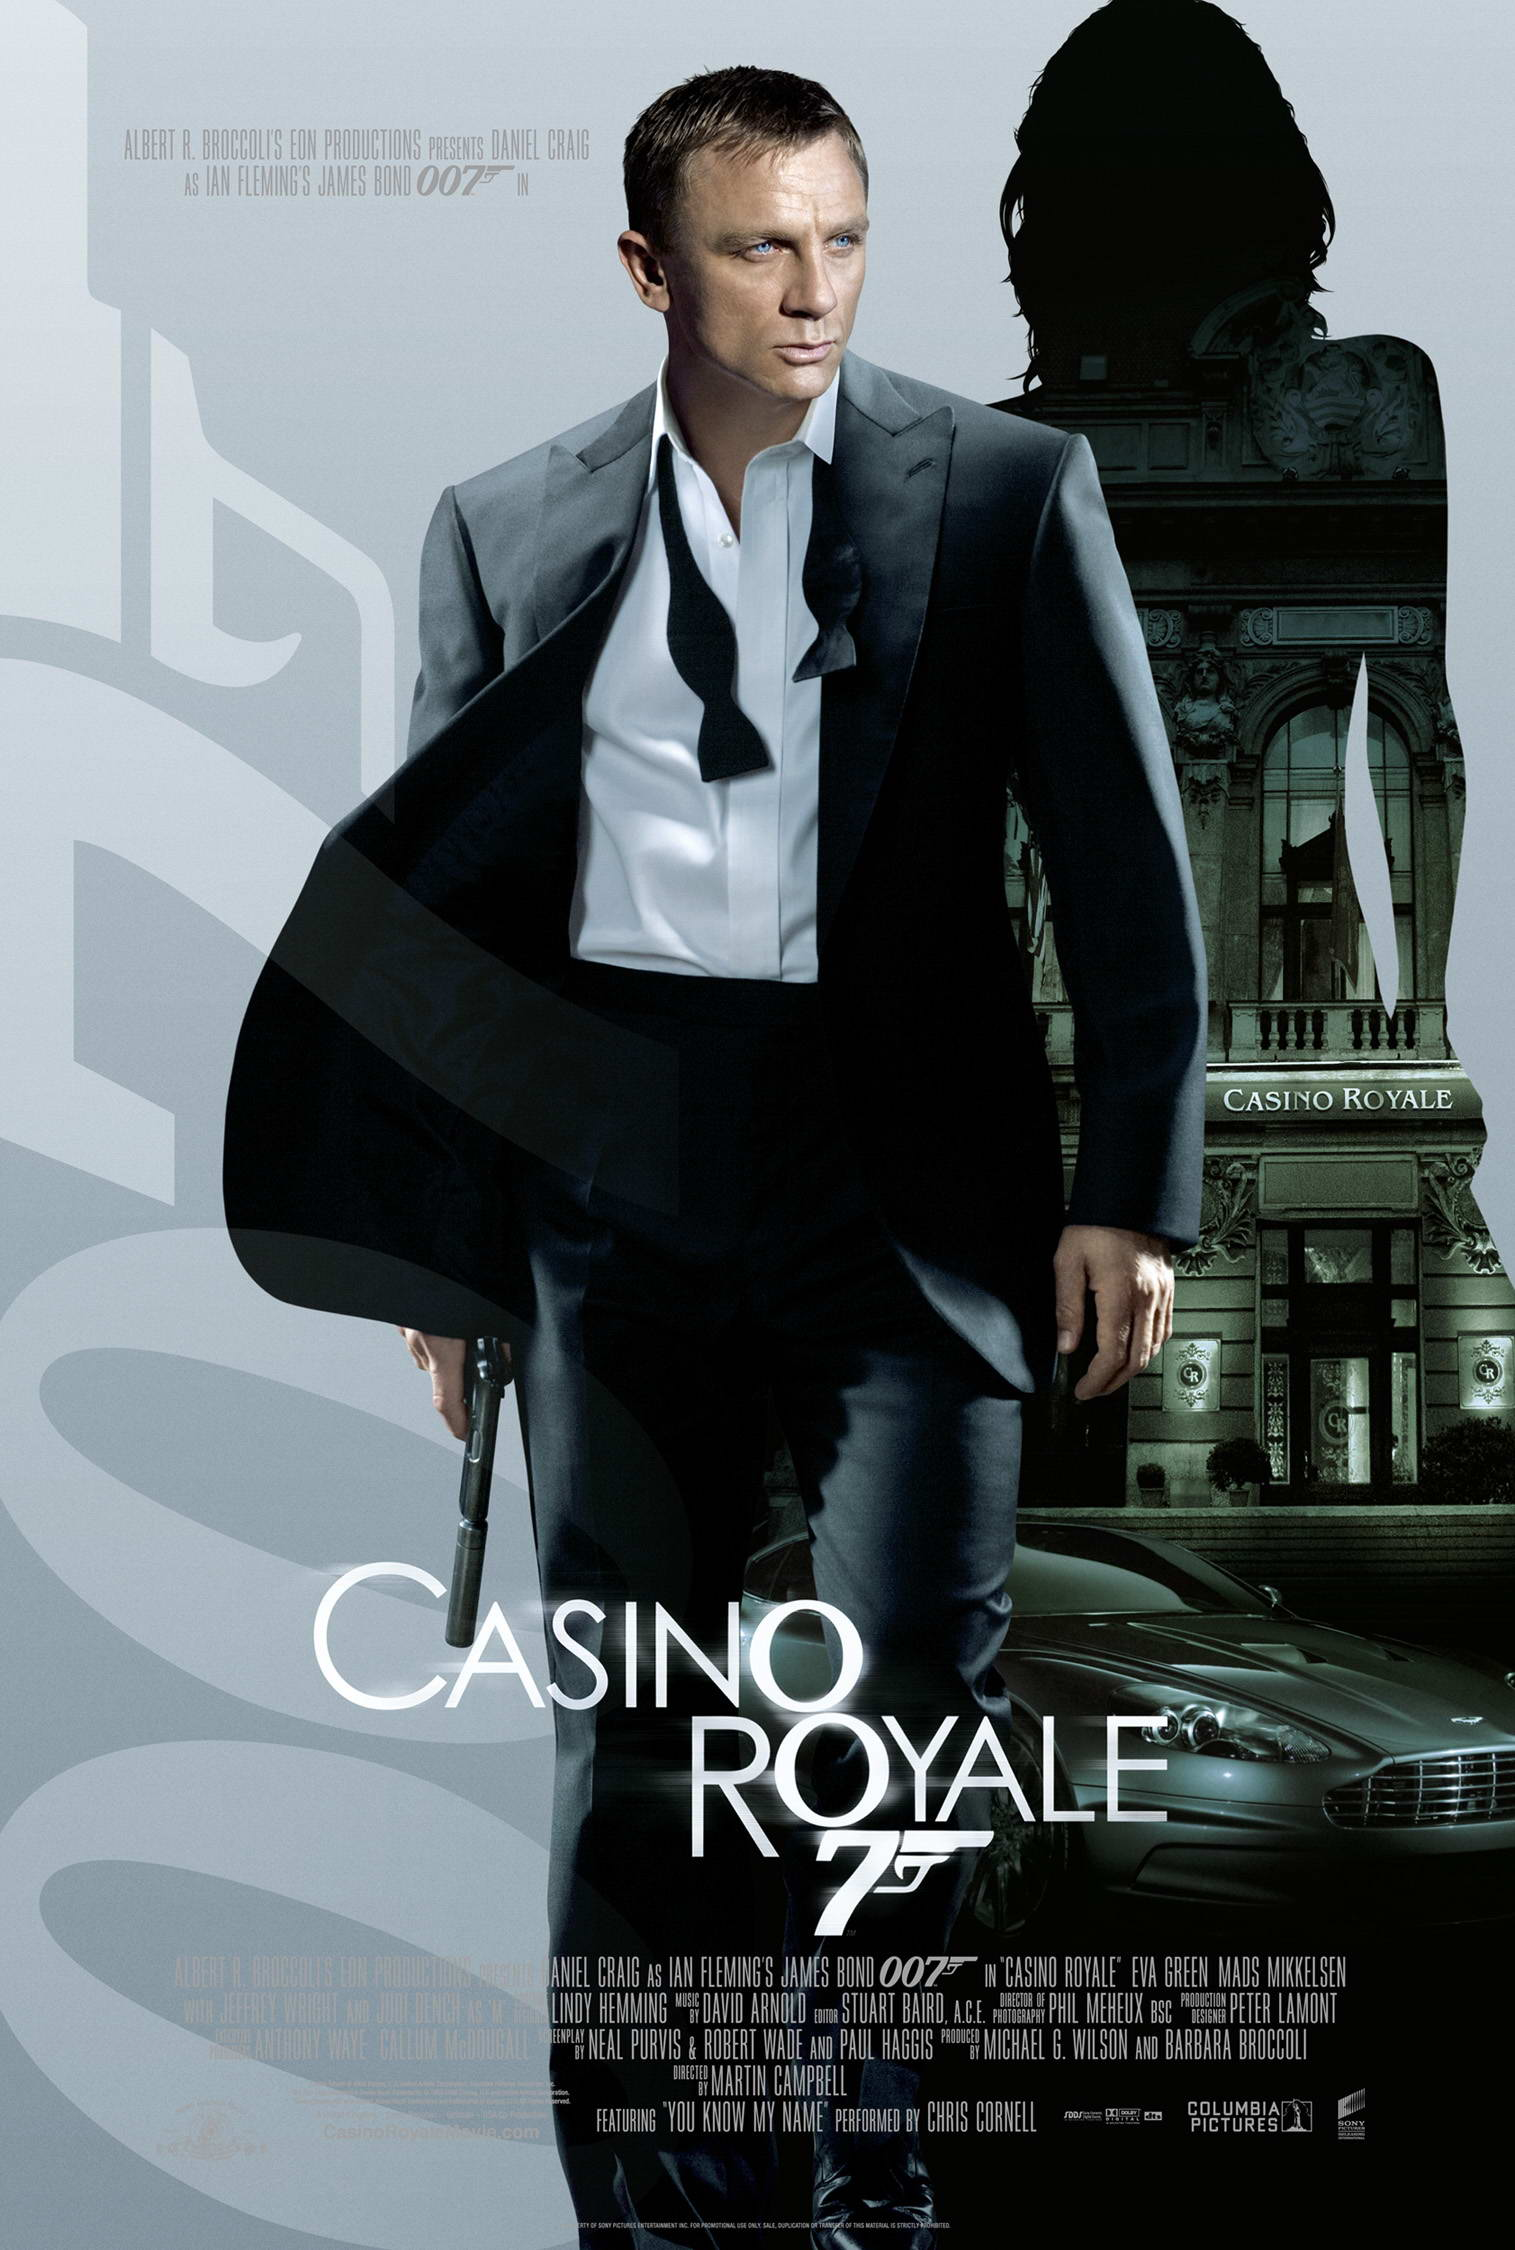 casino royale online movie free slizzing hot